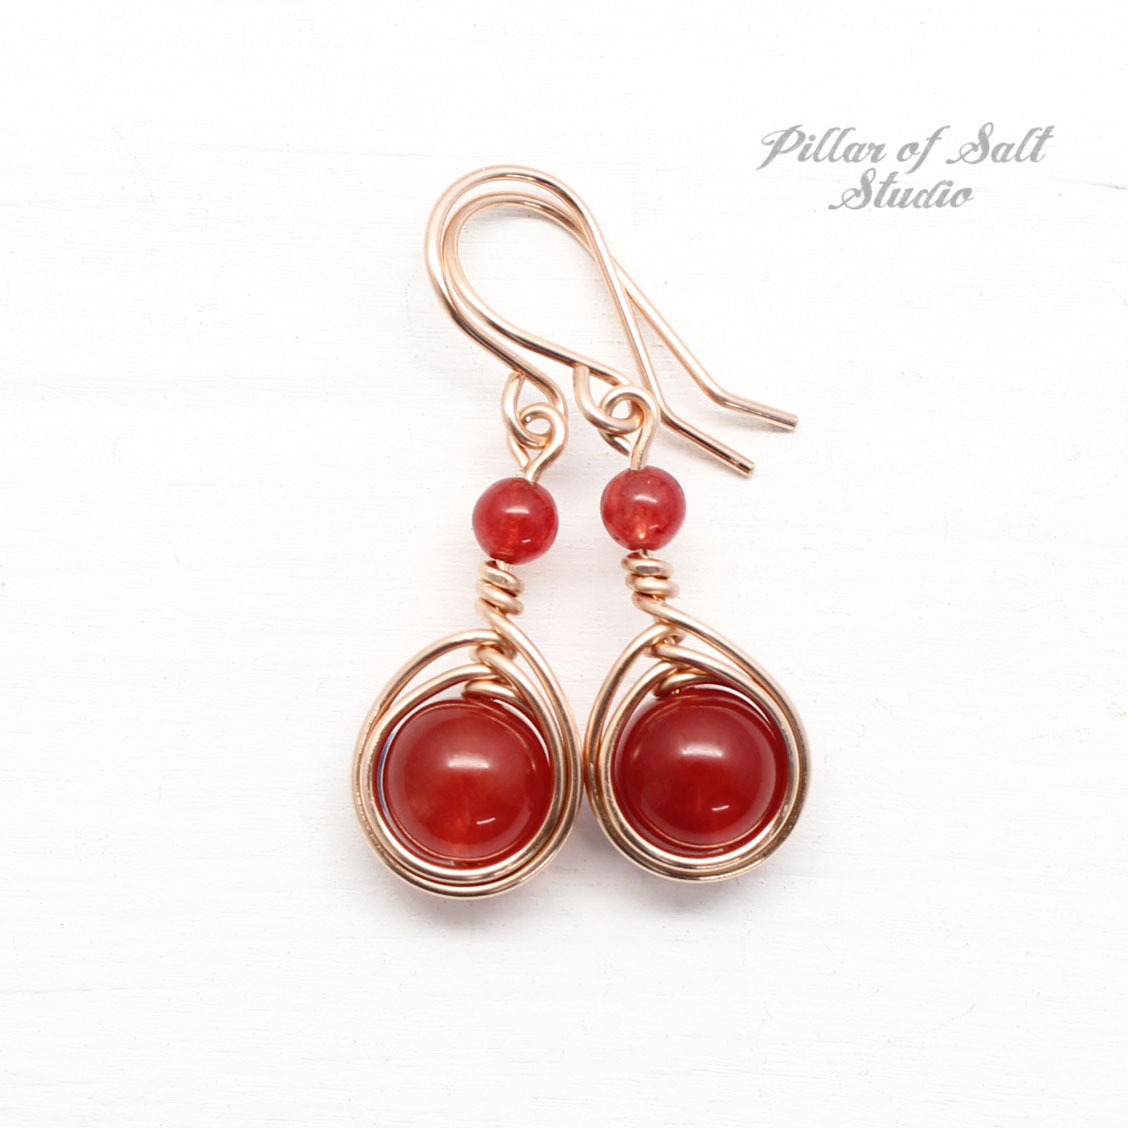 Red Quartz Earrings Worn by Marla Sokoloff on Lifetime movie The Road Home for Christmas